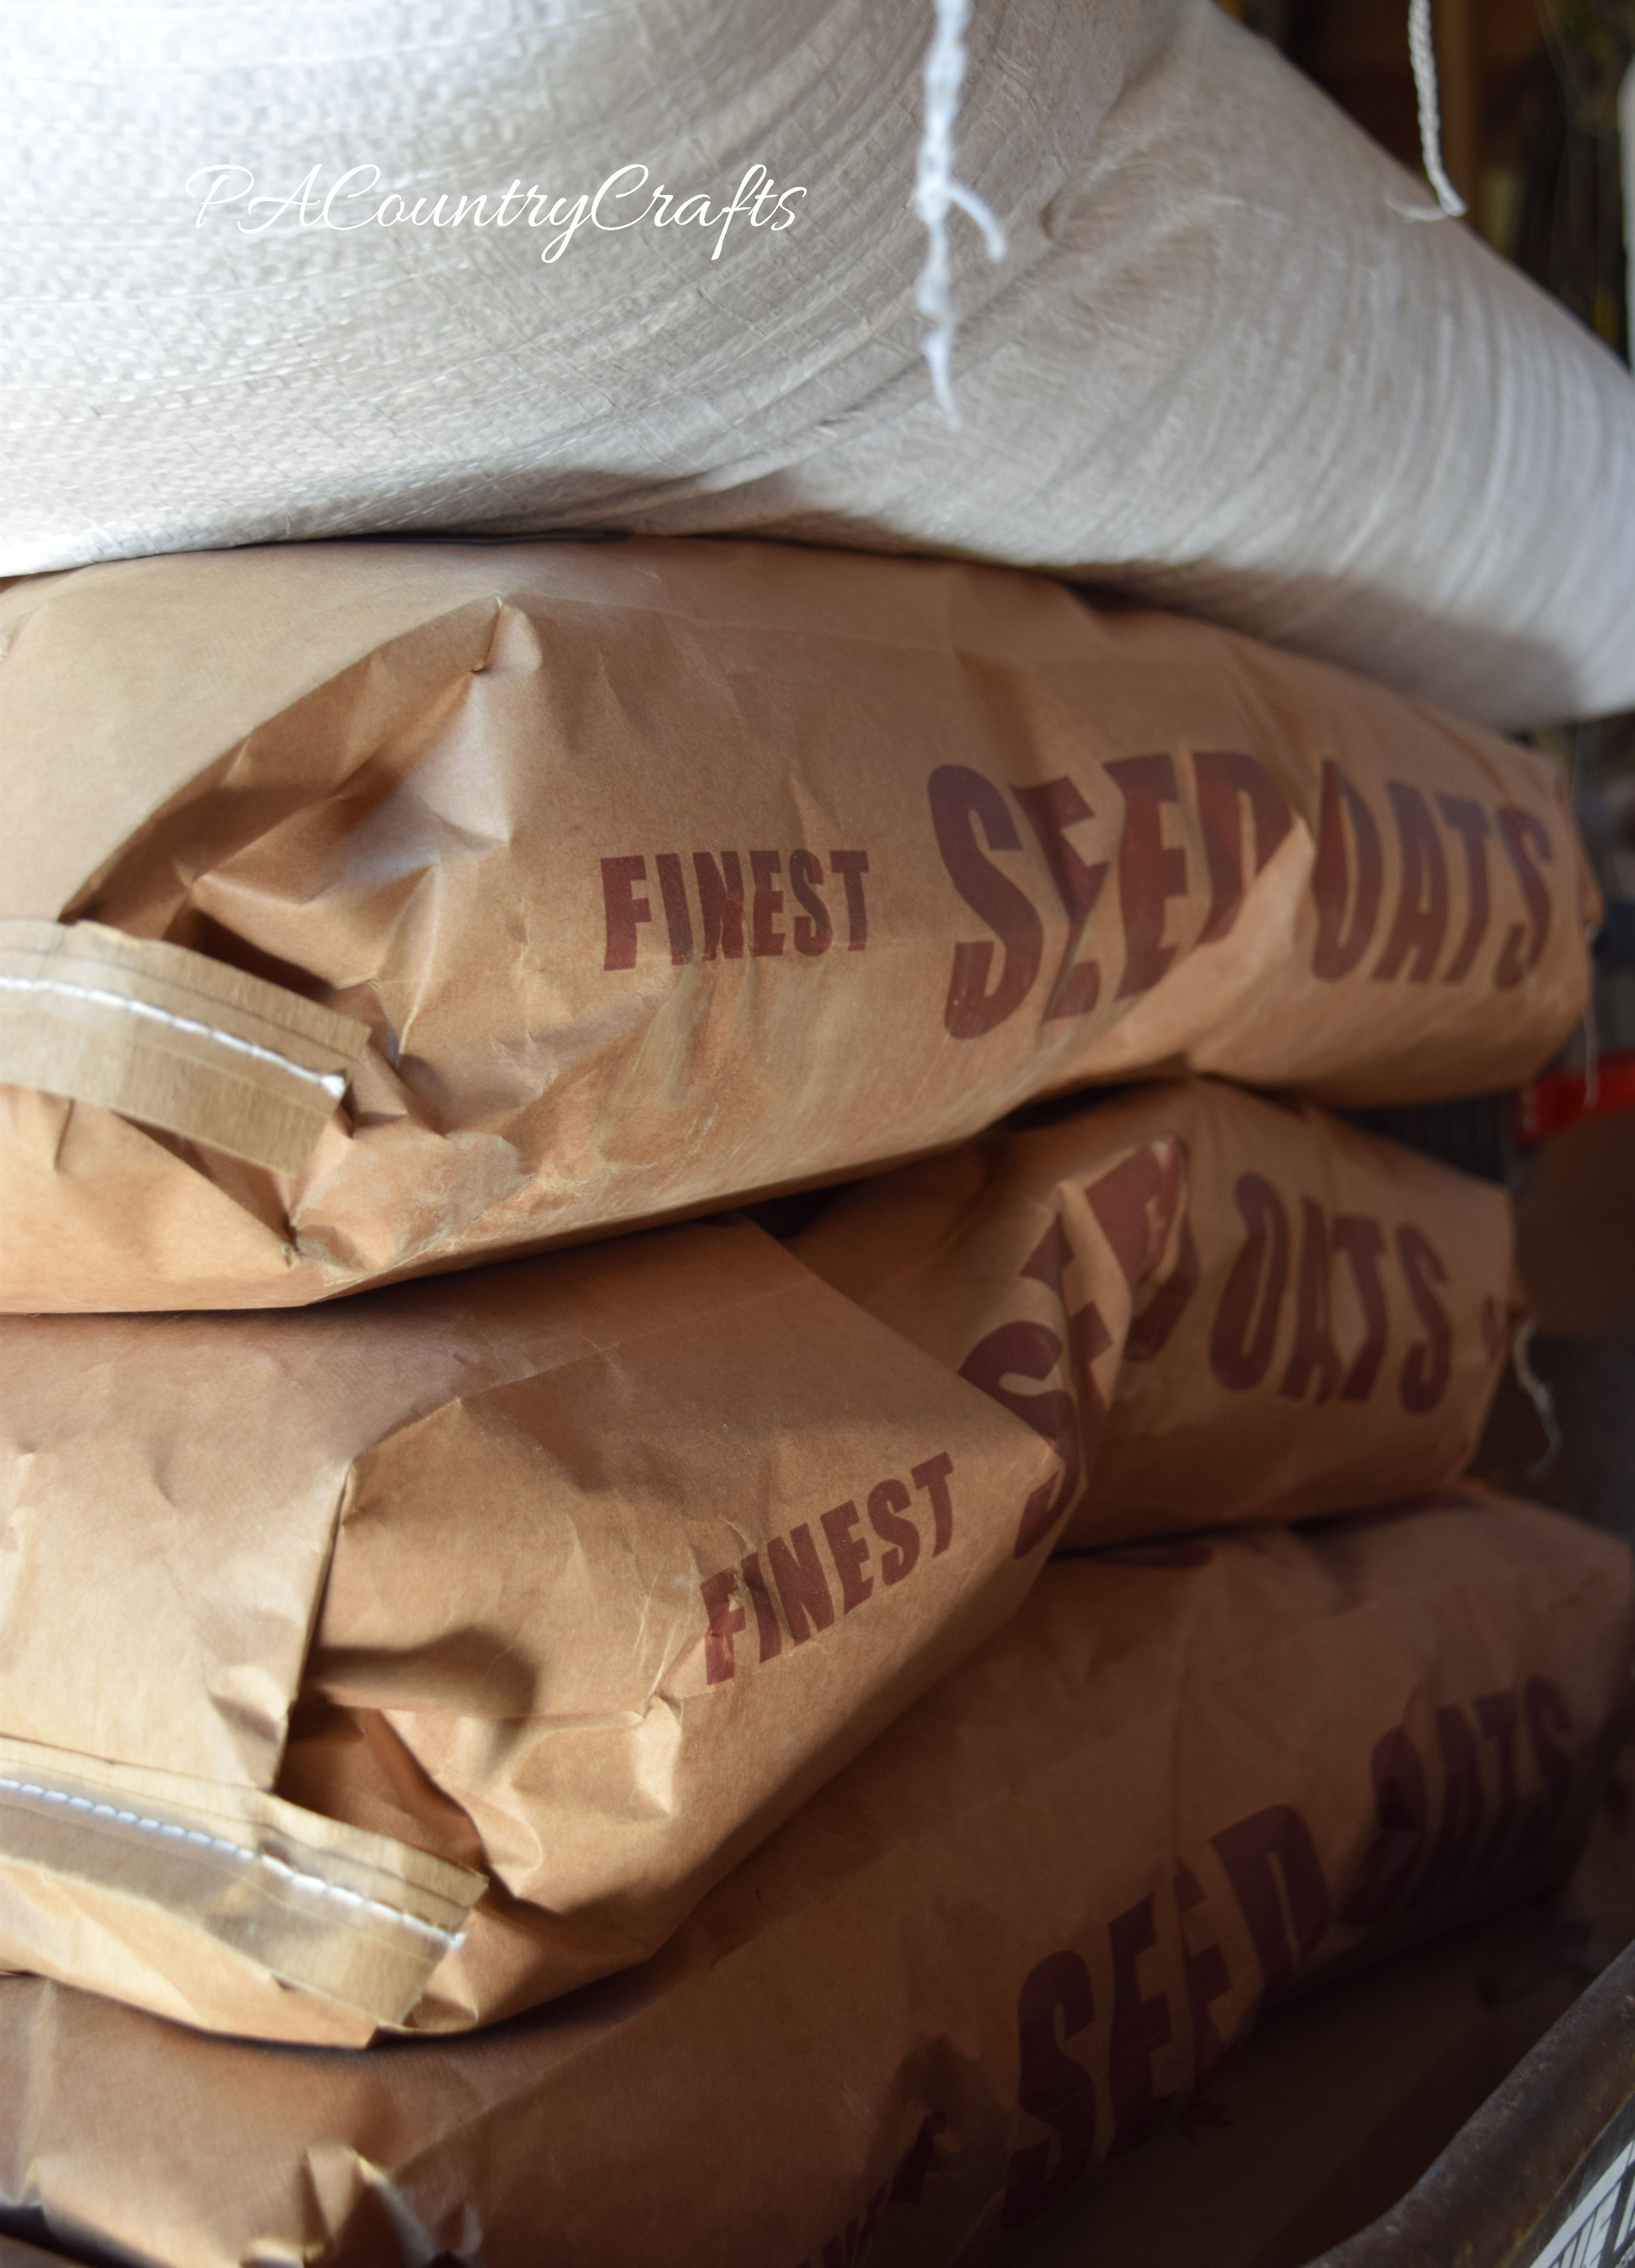 bags of seeds